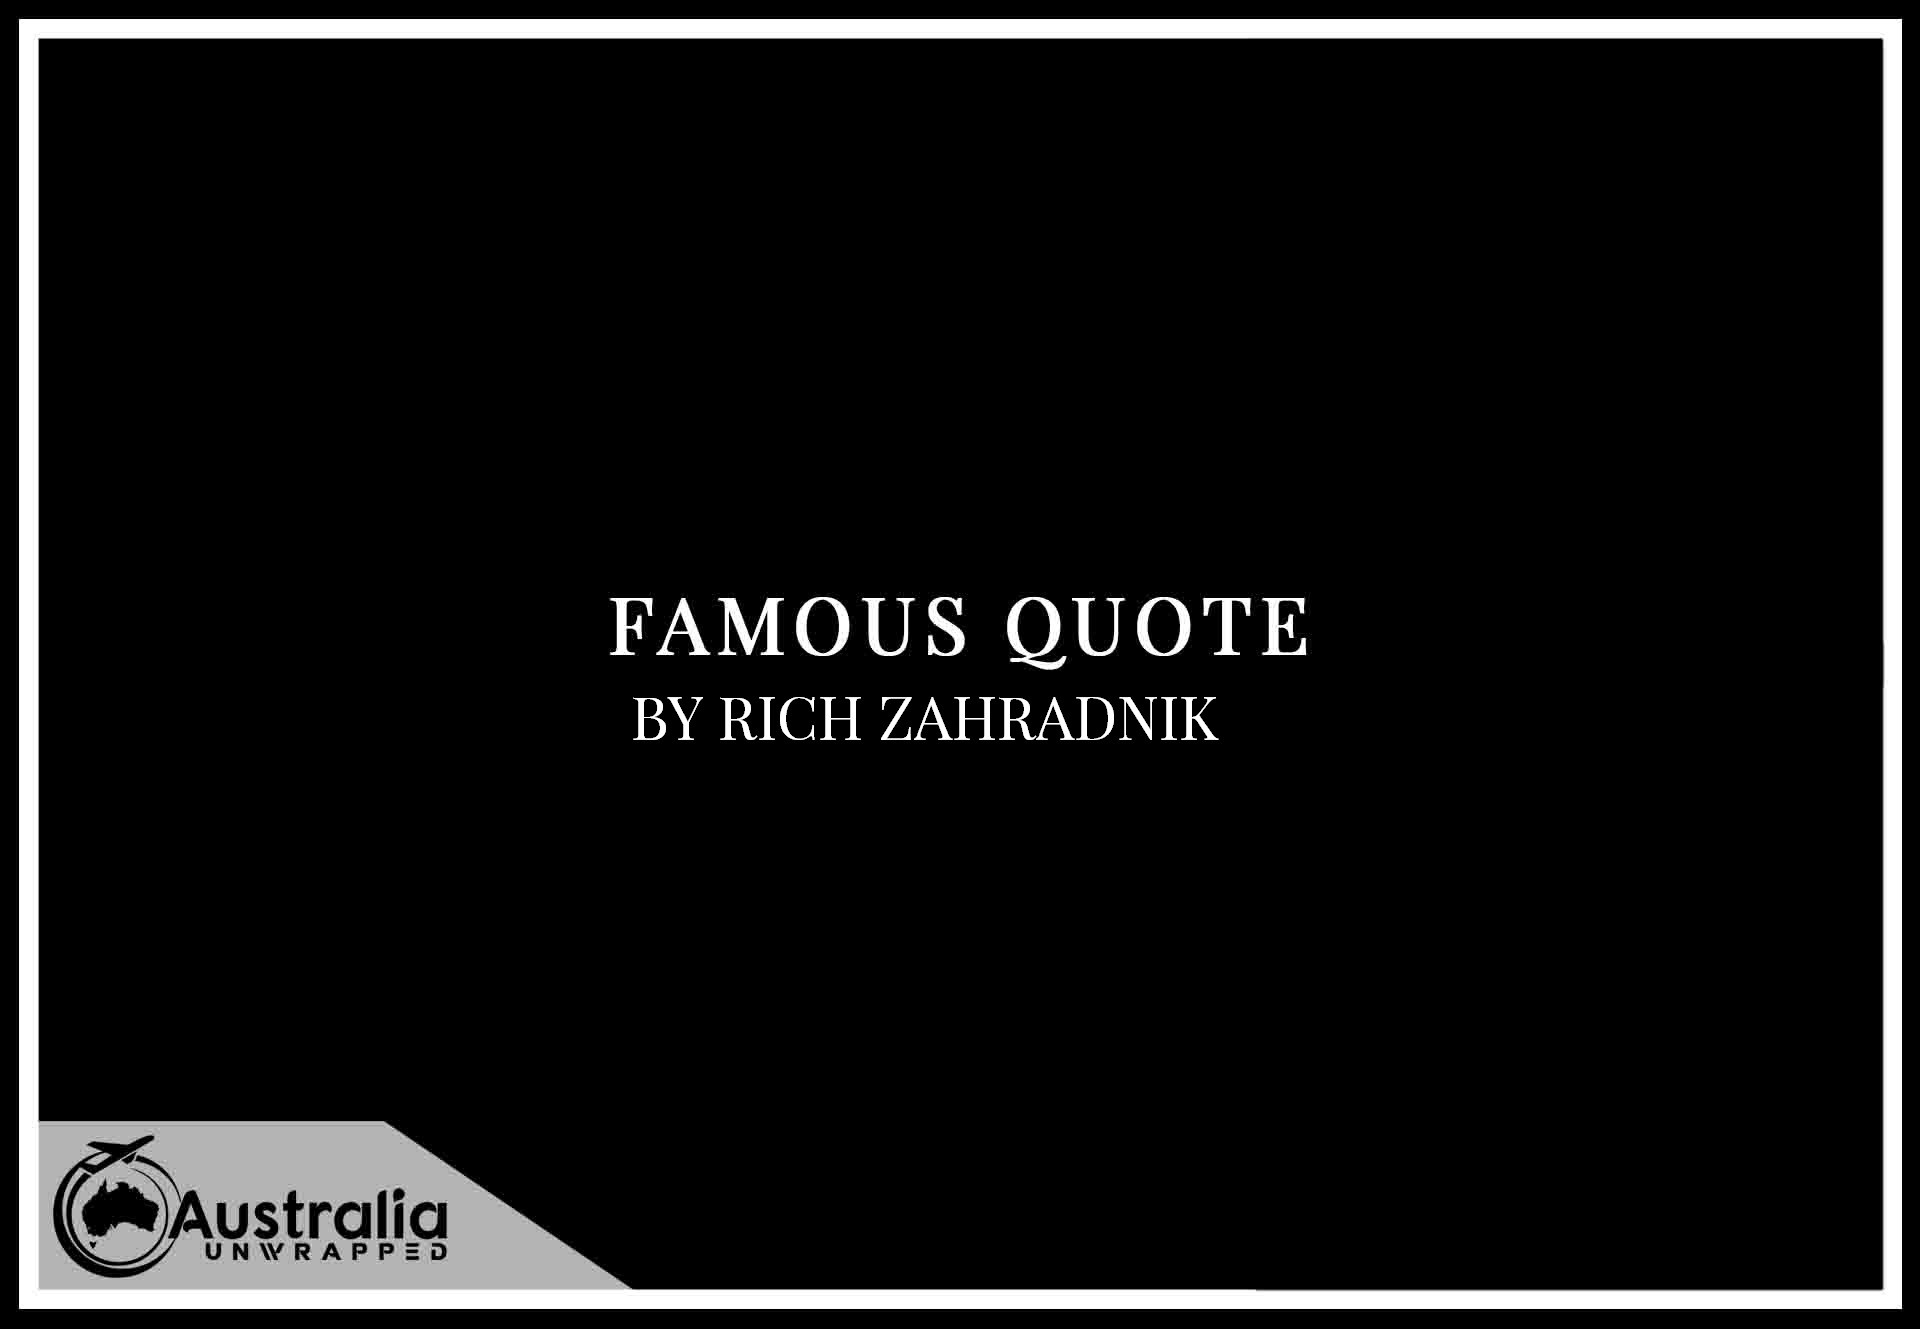 Top 1 Famous Quotes by Author Rich Zahradnik